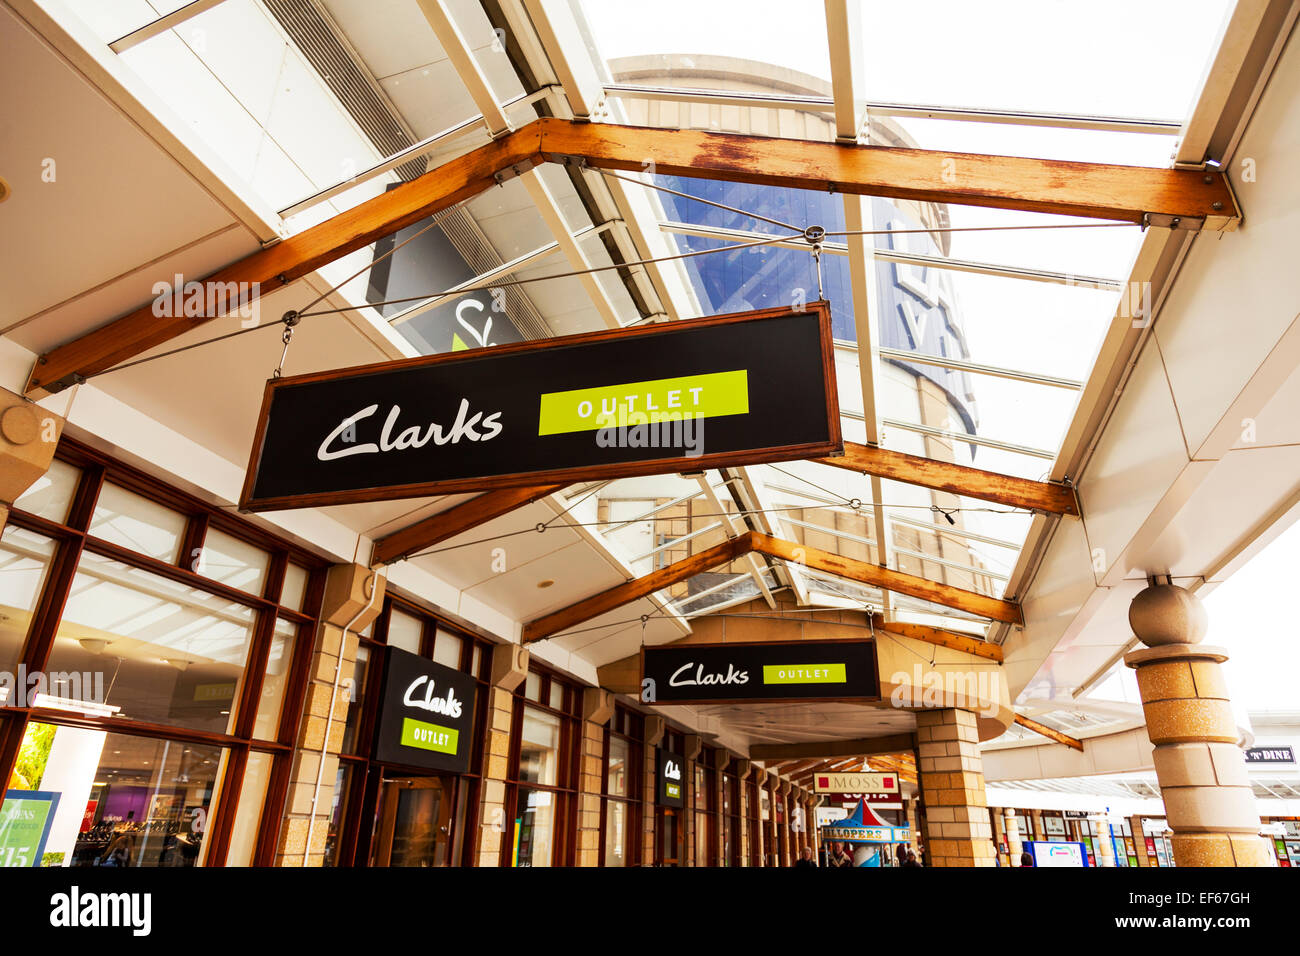 0f6f6d4f92e1eb Clarks shoes outlet sign Doncaster Lakeside shops stores shop store Town  South Yorkshire UK England -